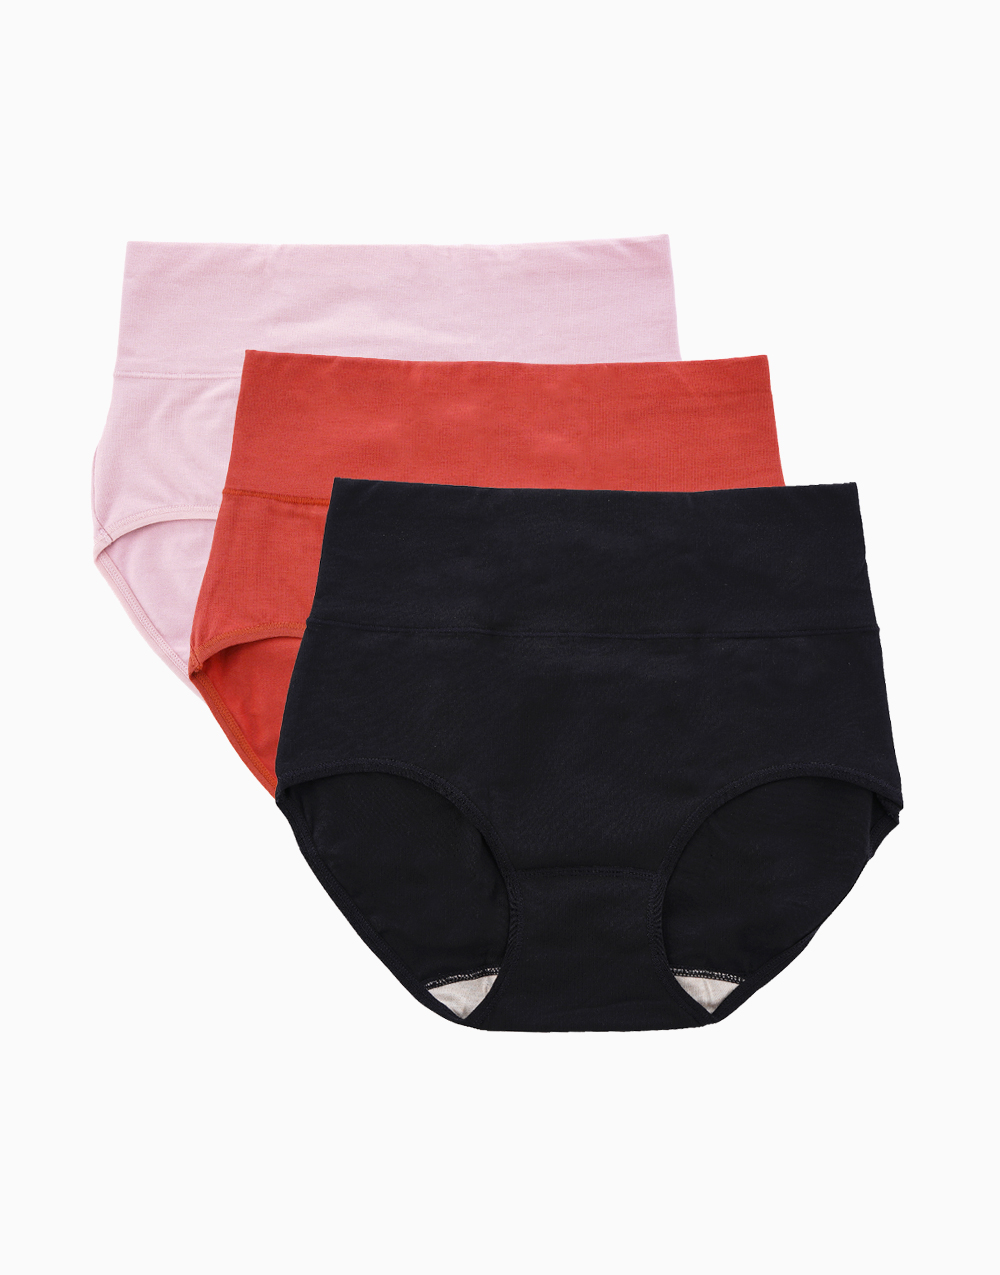 Belly Bikinis Mixed Color Set (Set of 3 High Rise Control Panties) by Jellyfit | Small